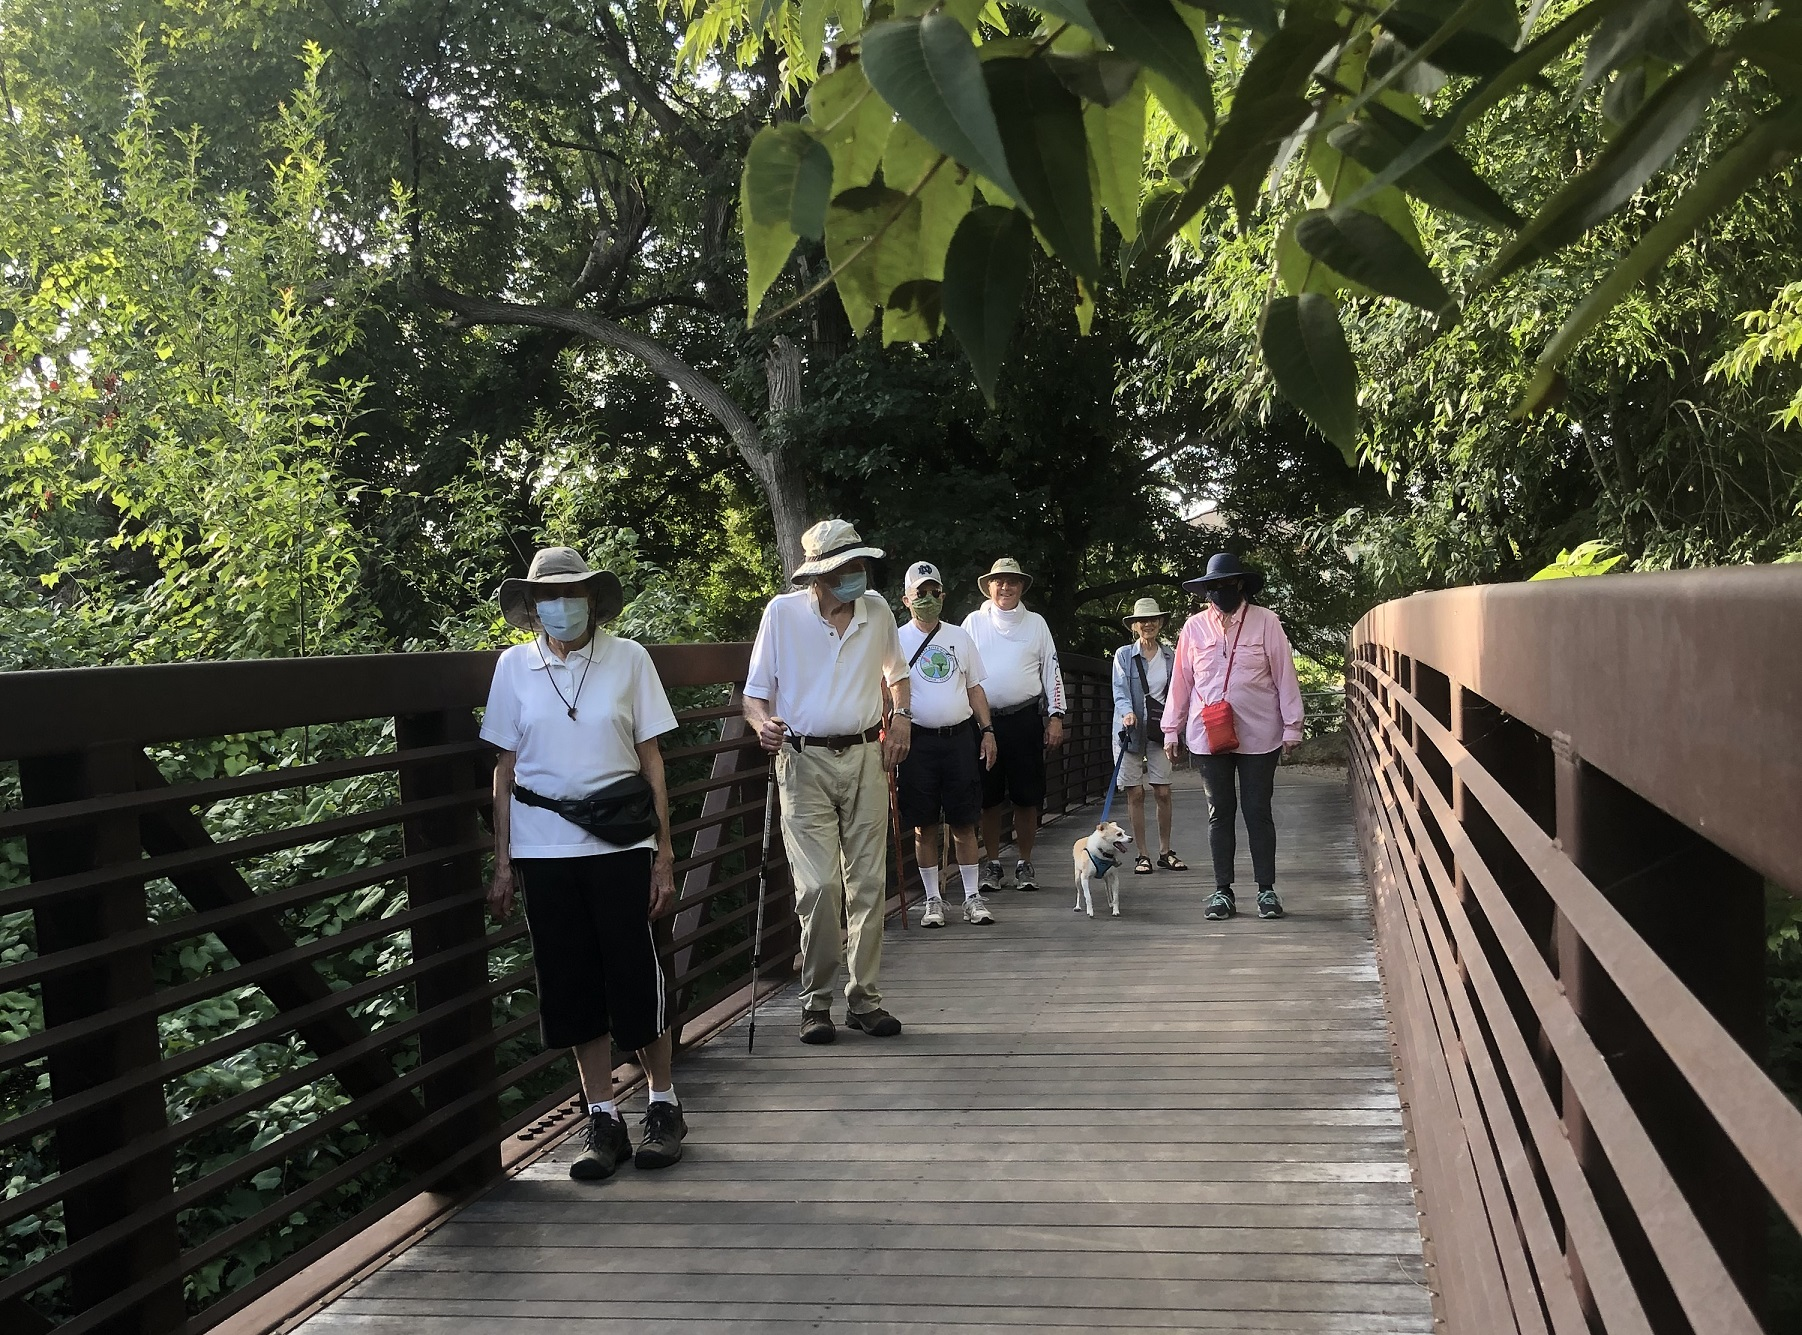 Photos from Old Settlers Park walk in Round Rock